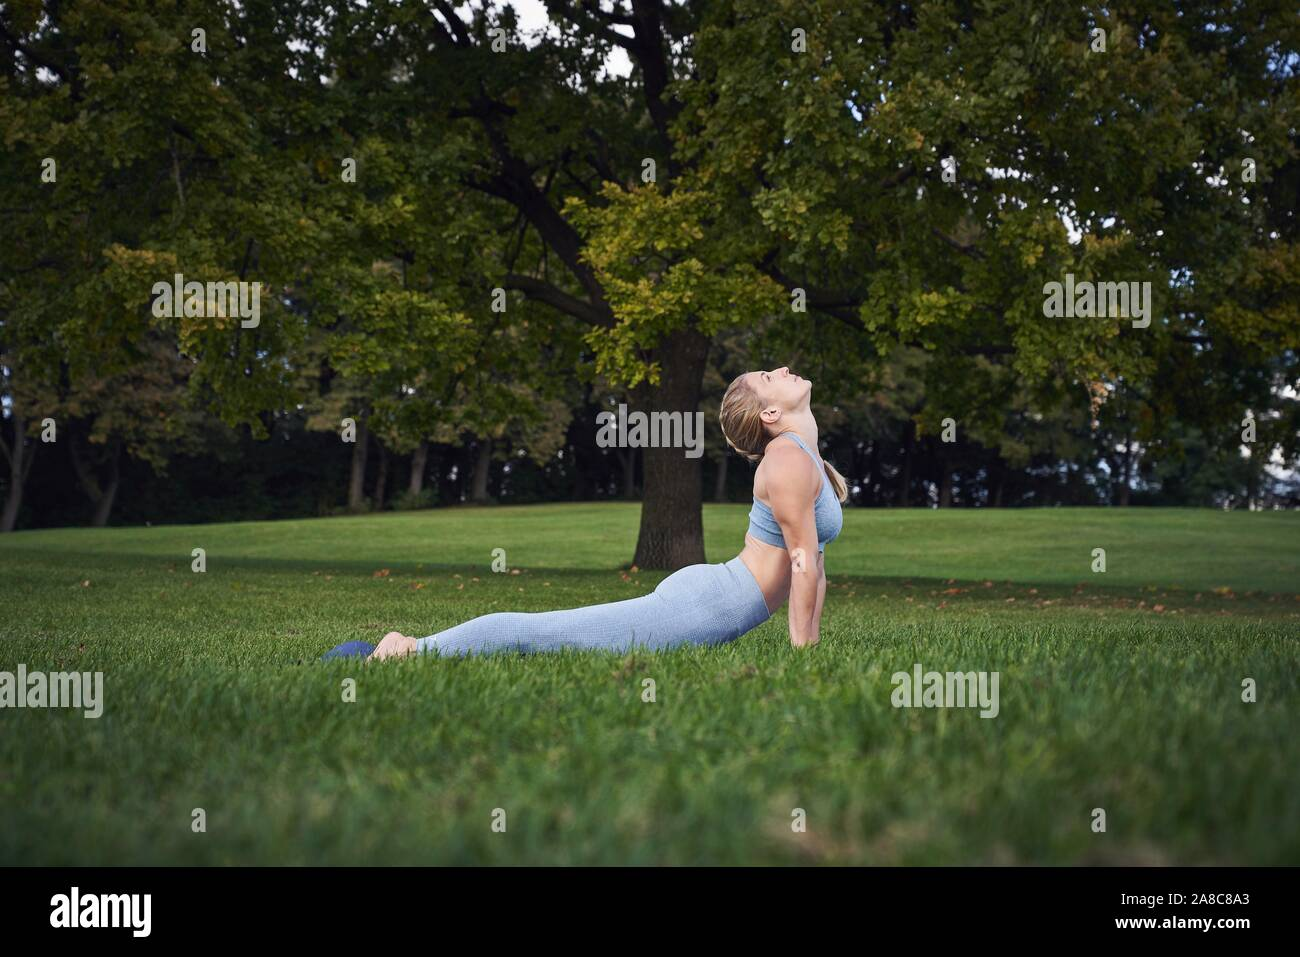 Young woman doing yoga in the park, gymnastics, Olympiapark, Munich, Germany Stock Photo